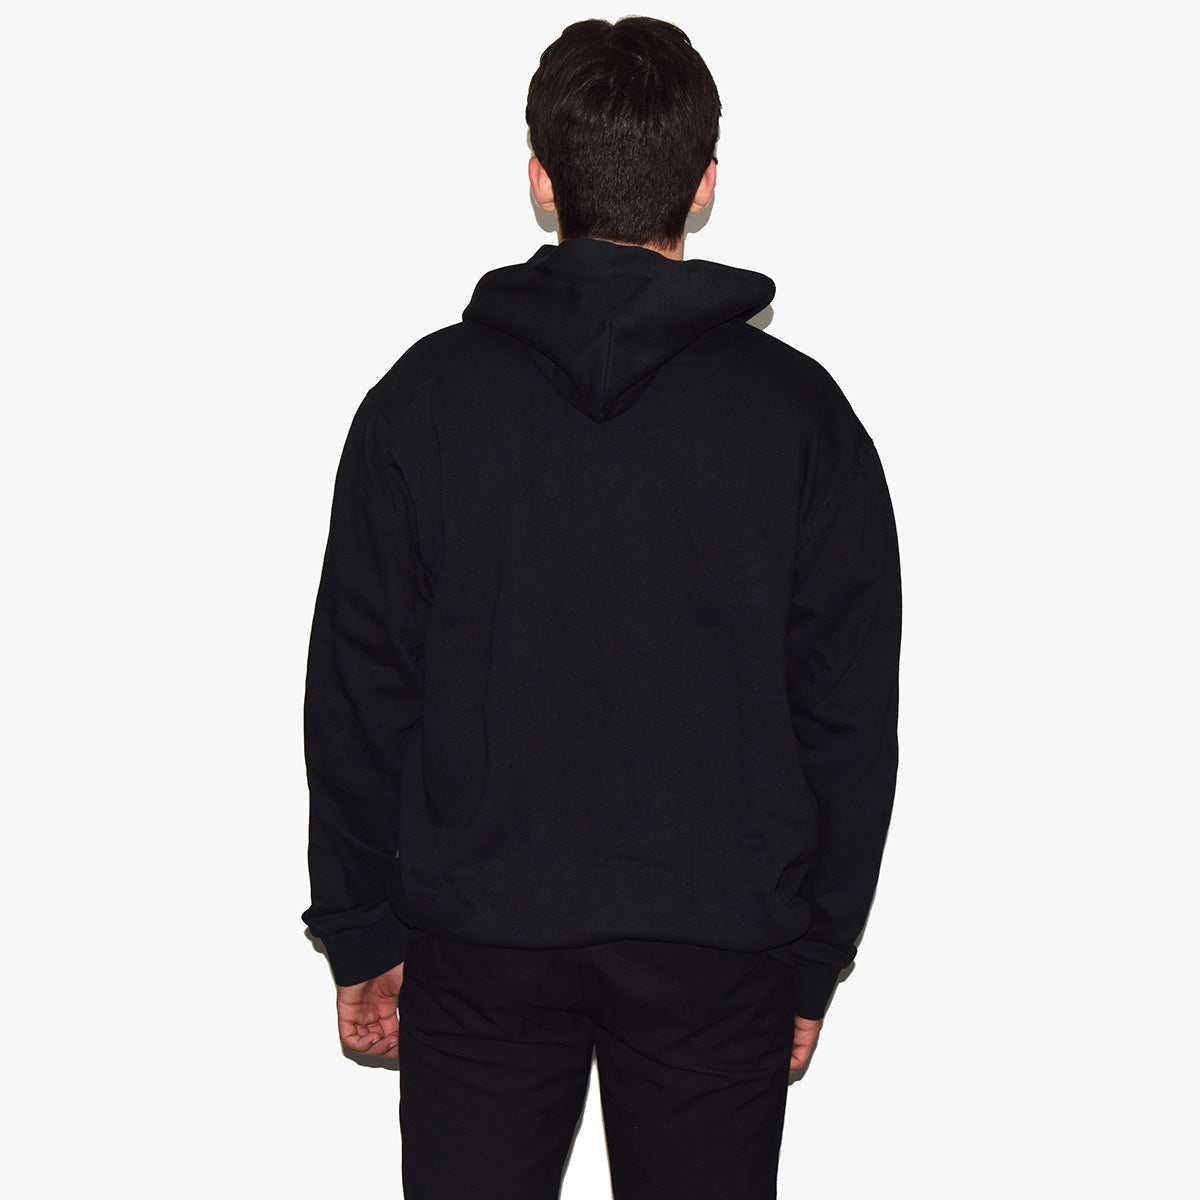 WORLDWIDE ALTERATION ZIP HOODIE - SORT - Jealous Denmark